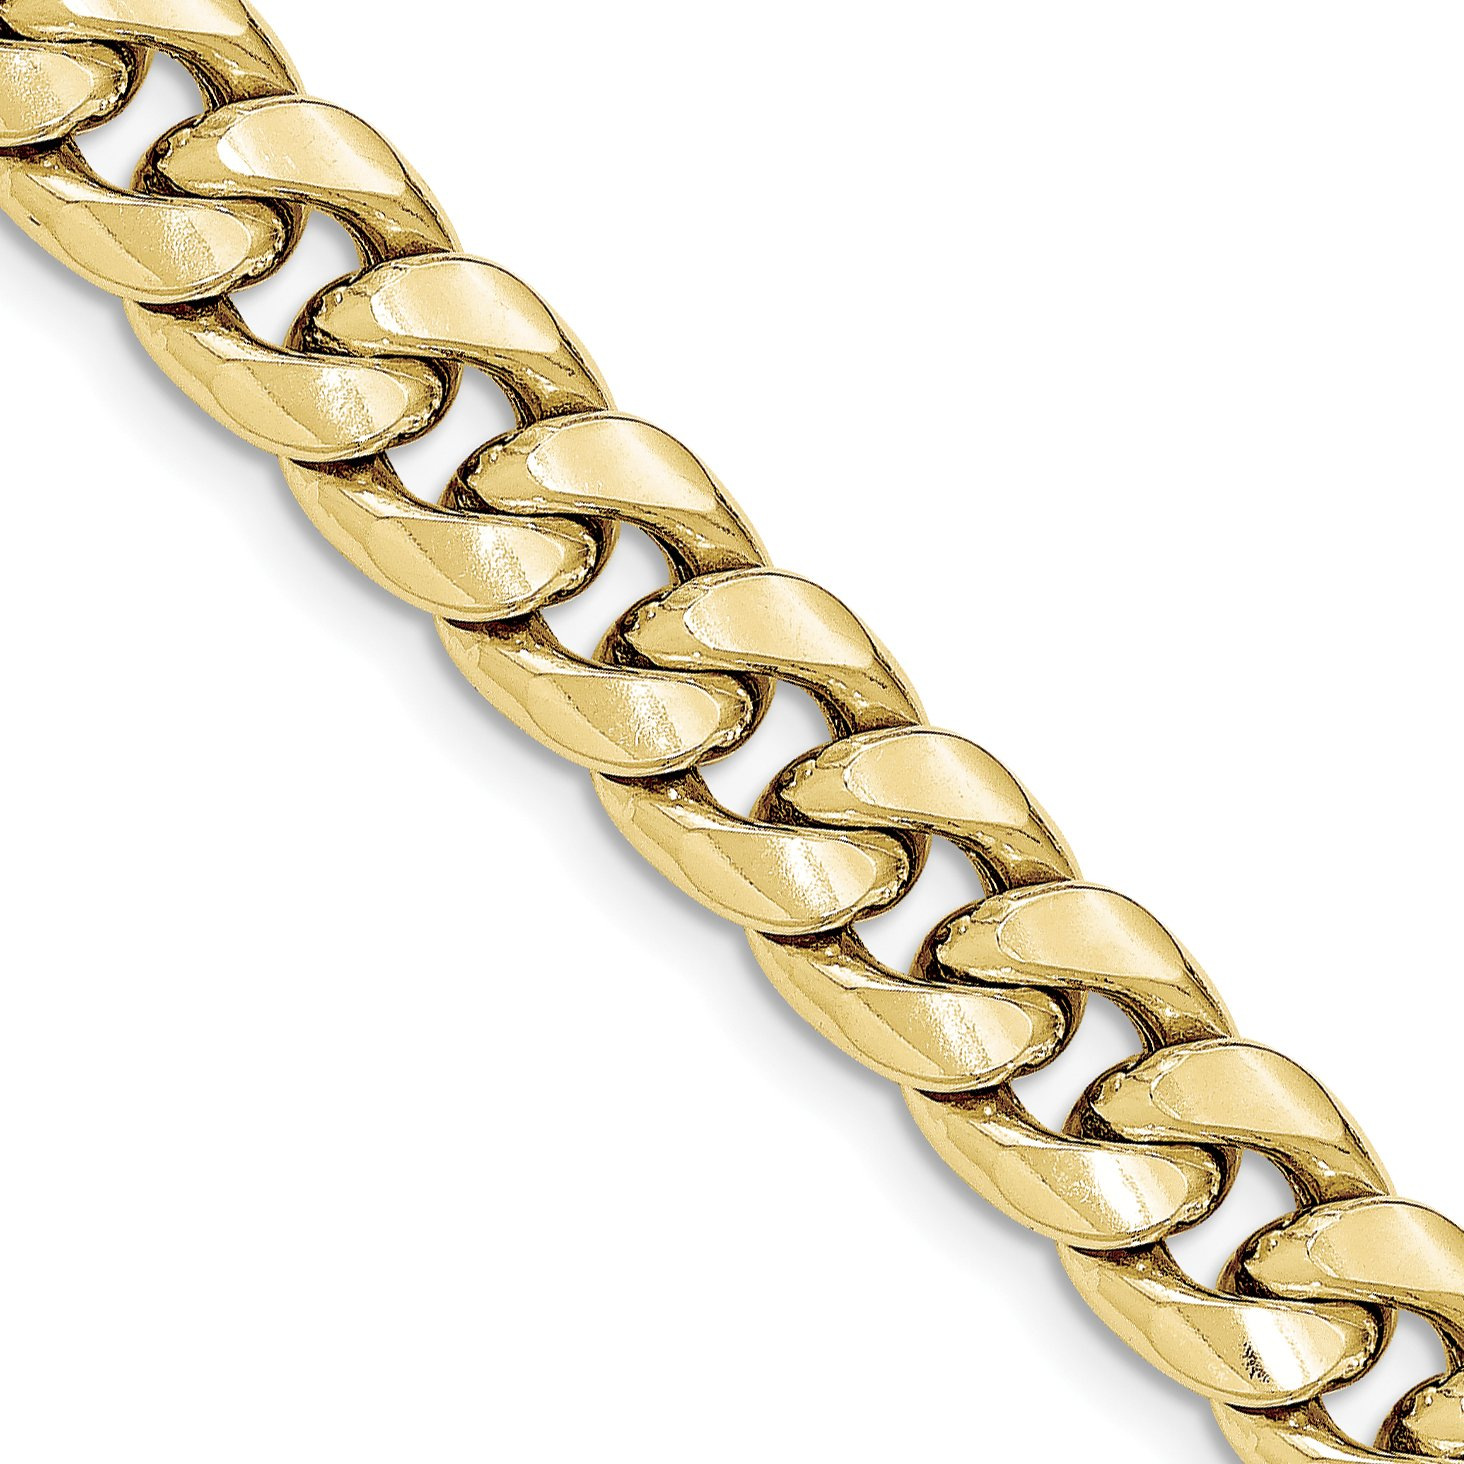 ICE CARATS 14k Yellow Gold 11mm Miami Cuban Bracelet Chain 8 Inch Curb Fine Jewelry Gift Set For Women Heart